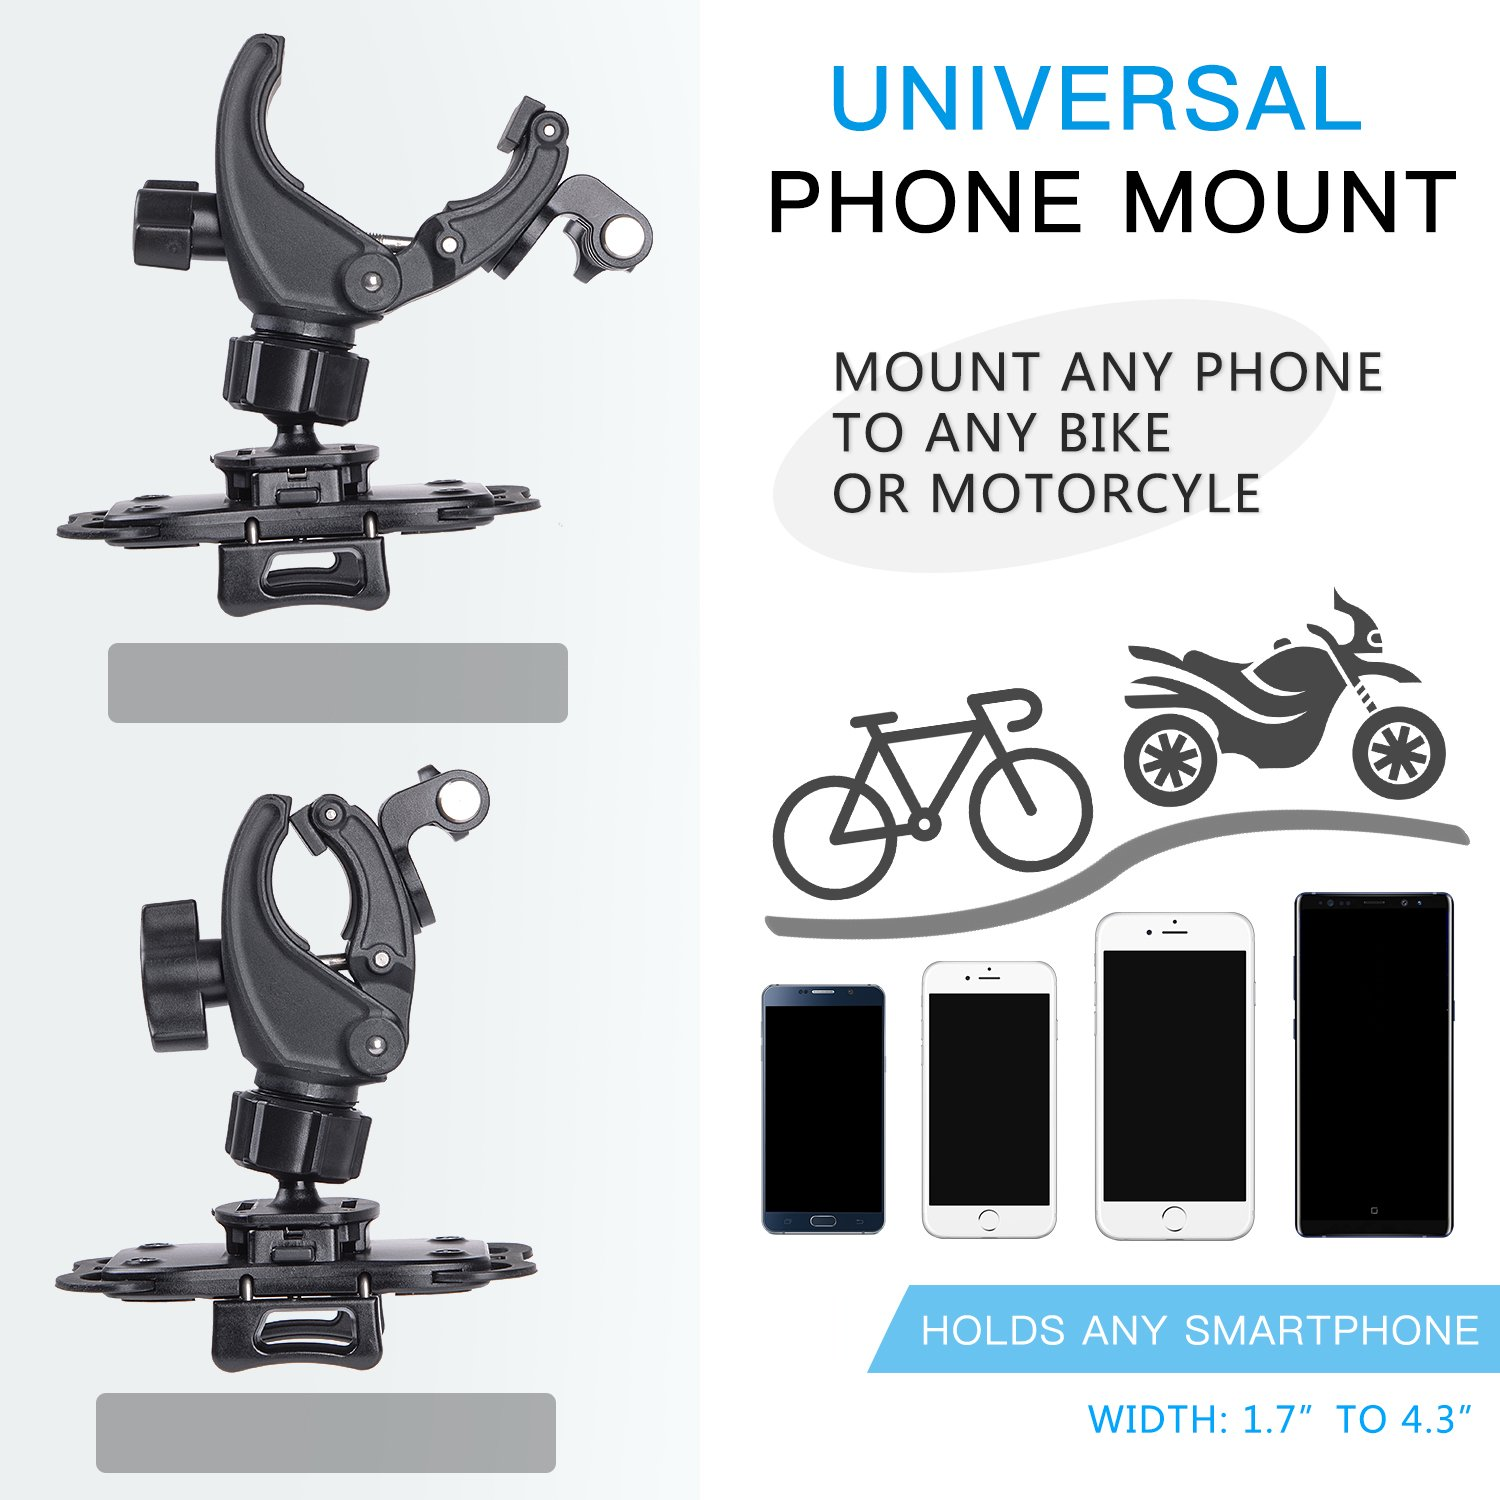 YELIN Bike Phone Mount Motorcycle Phone Holder Bike Camera Mount 2 in 1 Bicycle Holder Handlebar Clamp for Gopro Action Cam iPhone X 8 7 7 Plus 7s 6s Samsung Phone by YELIN (Image #5)